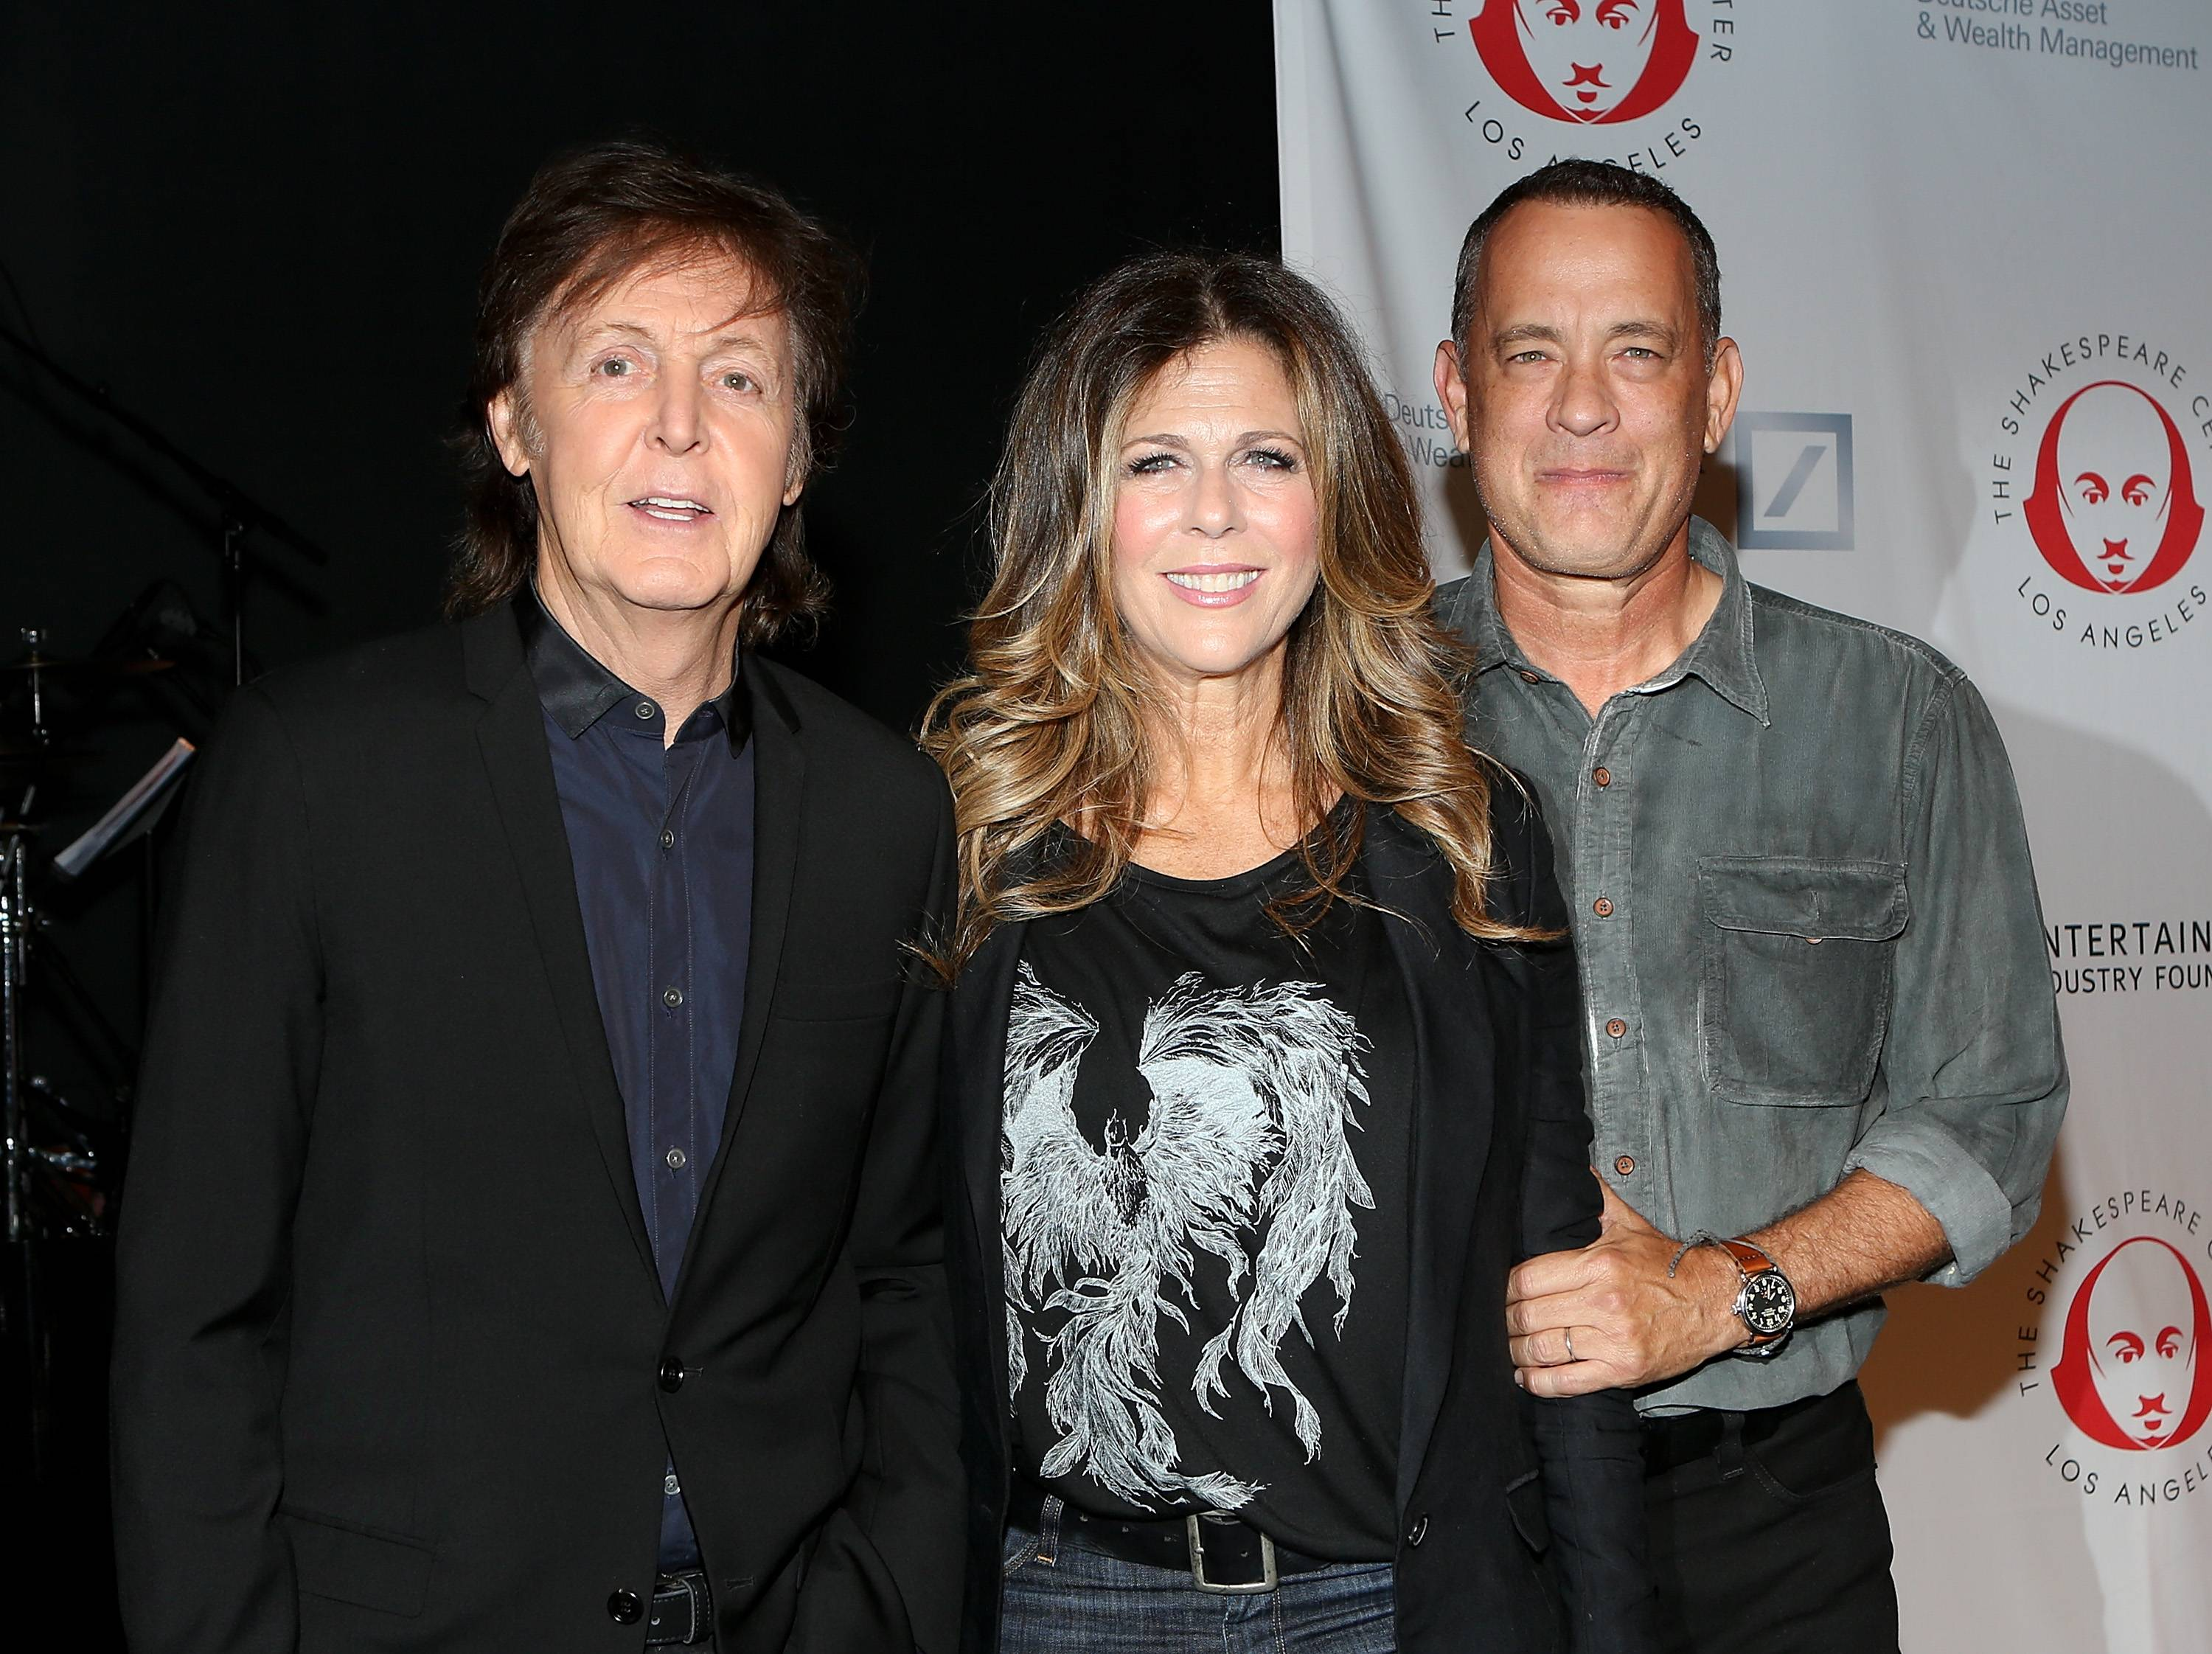 Paul McCartney, Rita Wilson, Tom Hanks